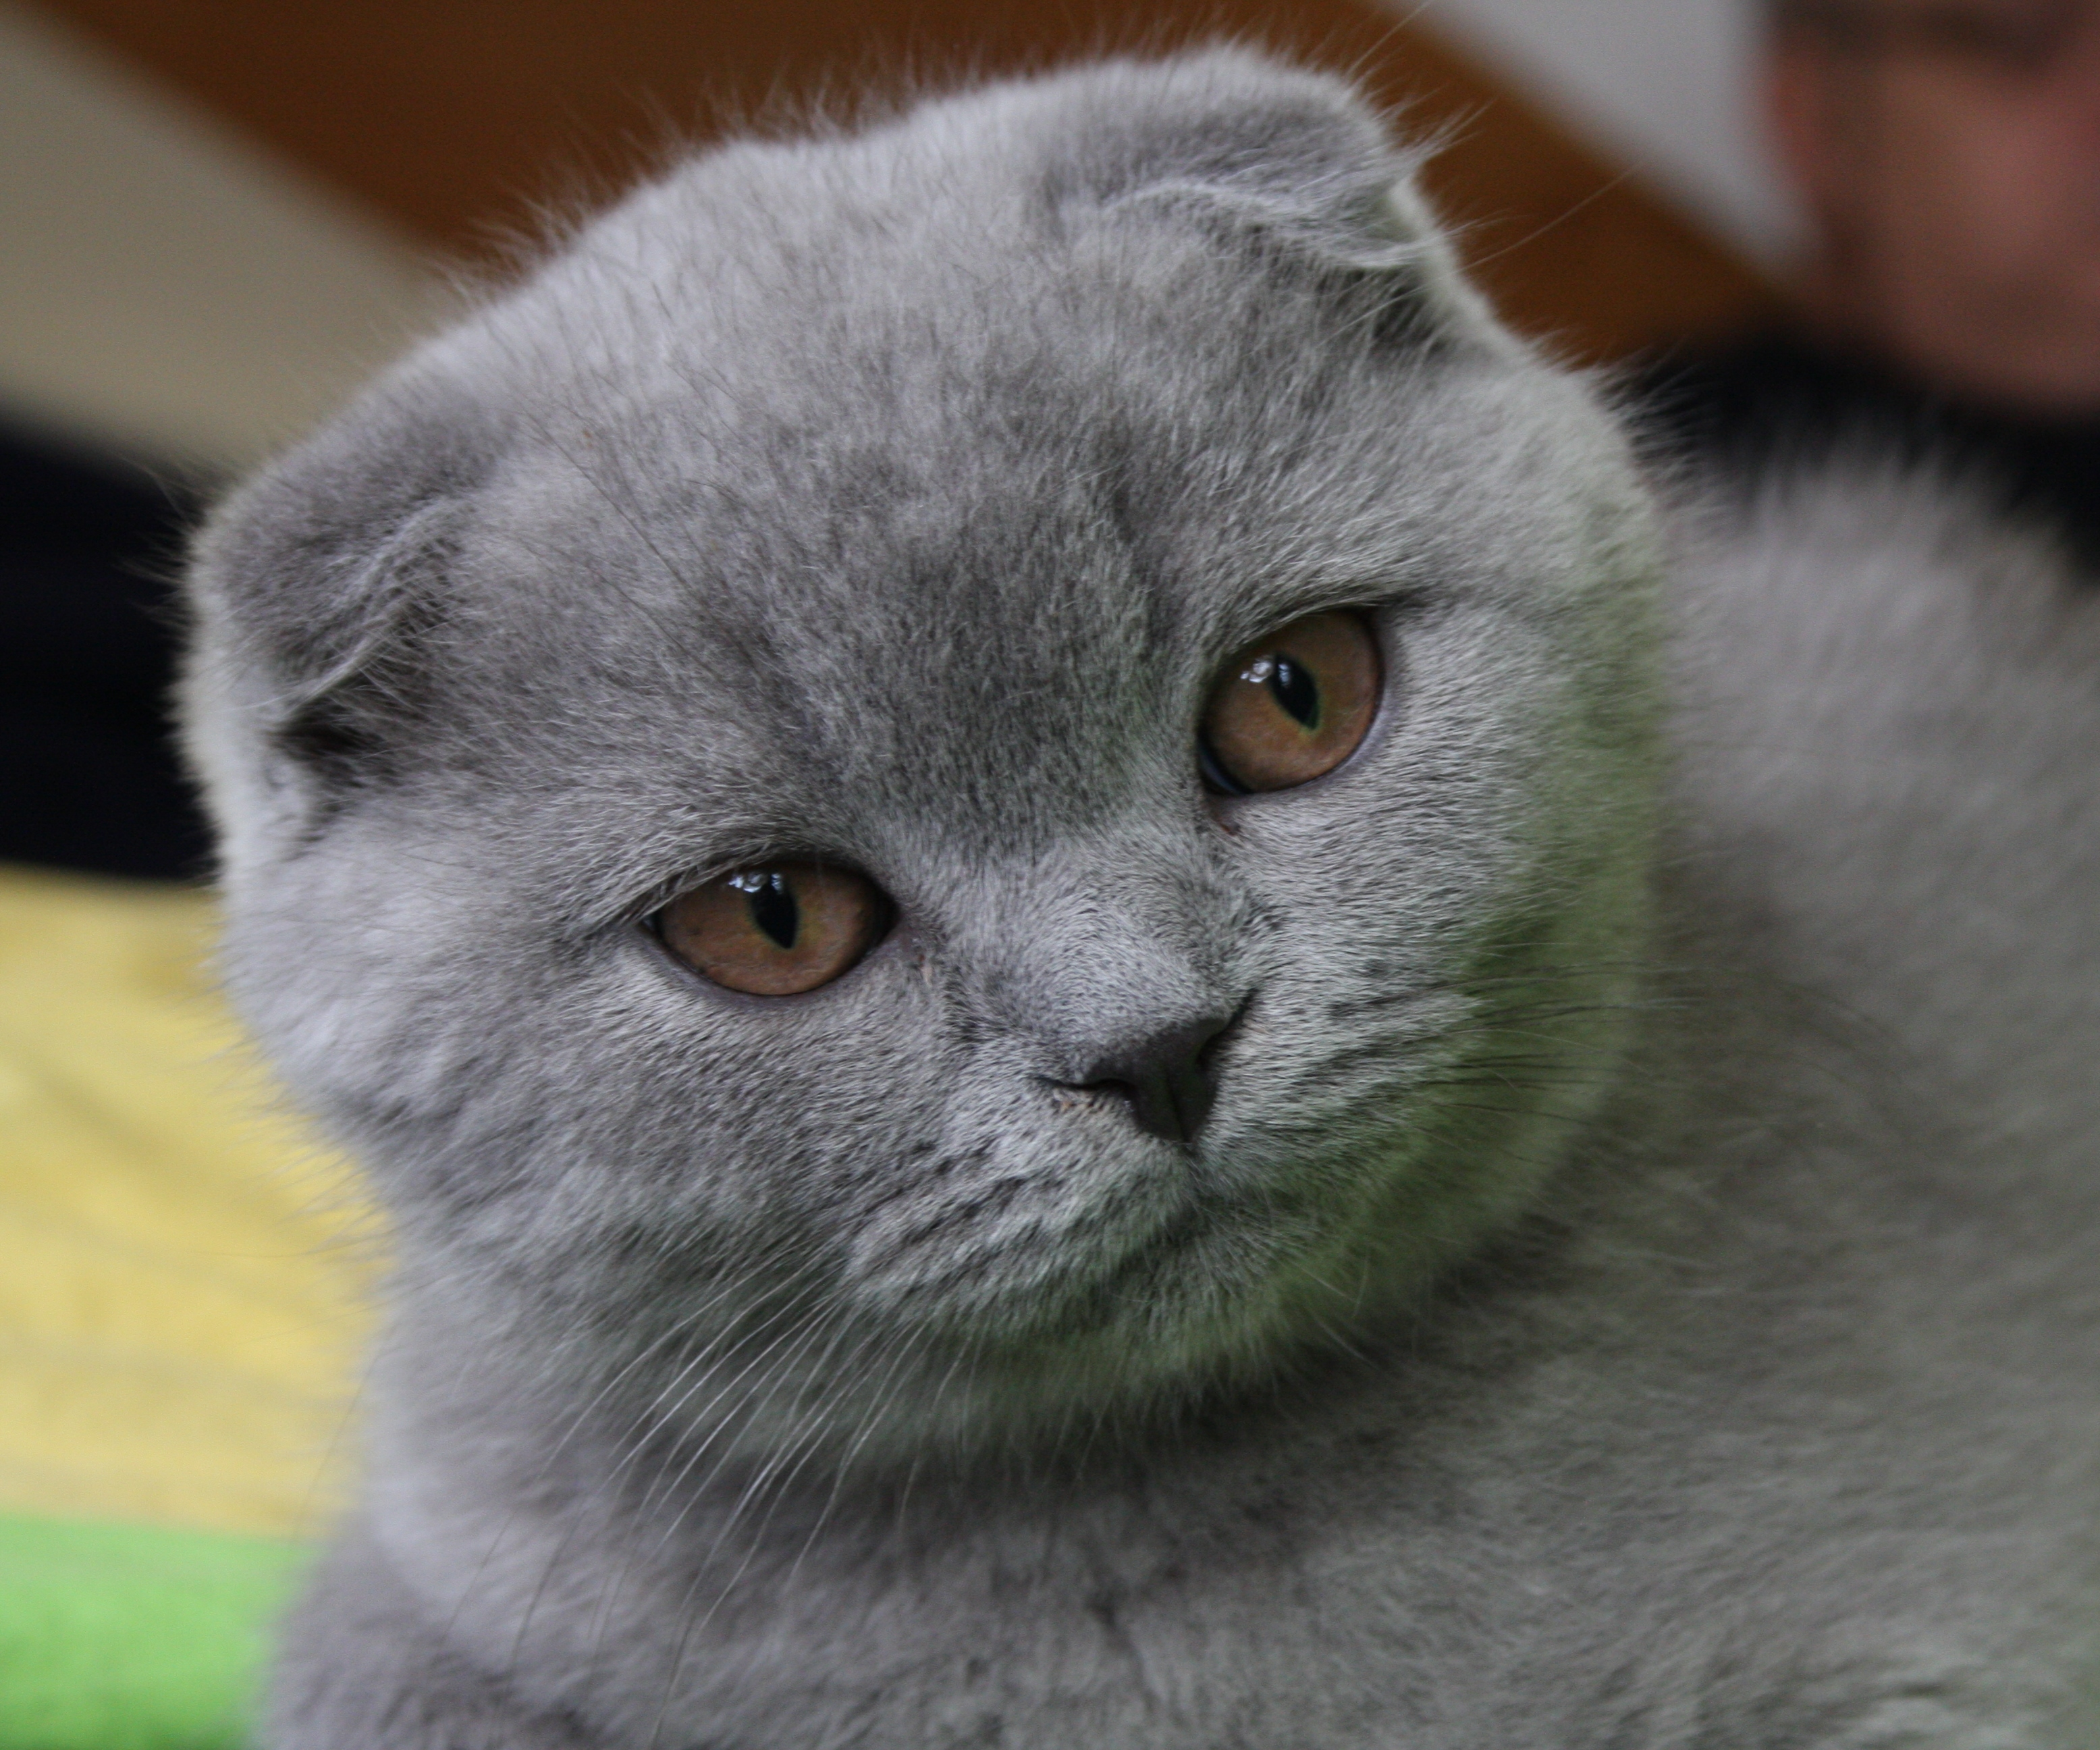 http://upload.wikimedia.org/wikipedia/commons/6/6c/3mo_lilac_Scottish_Fold_Fanel.jpg